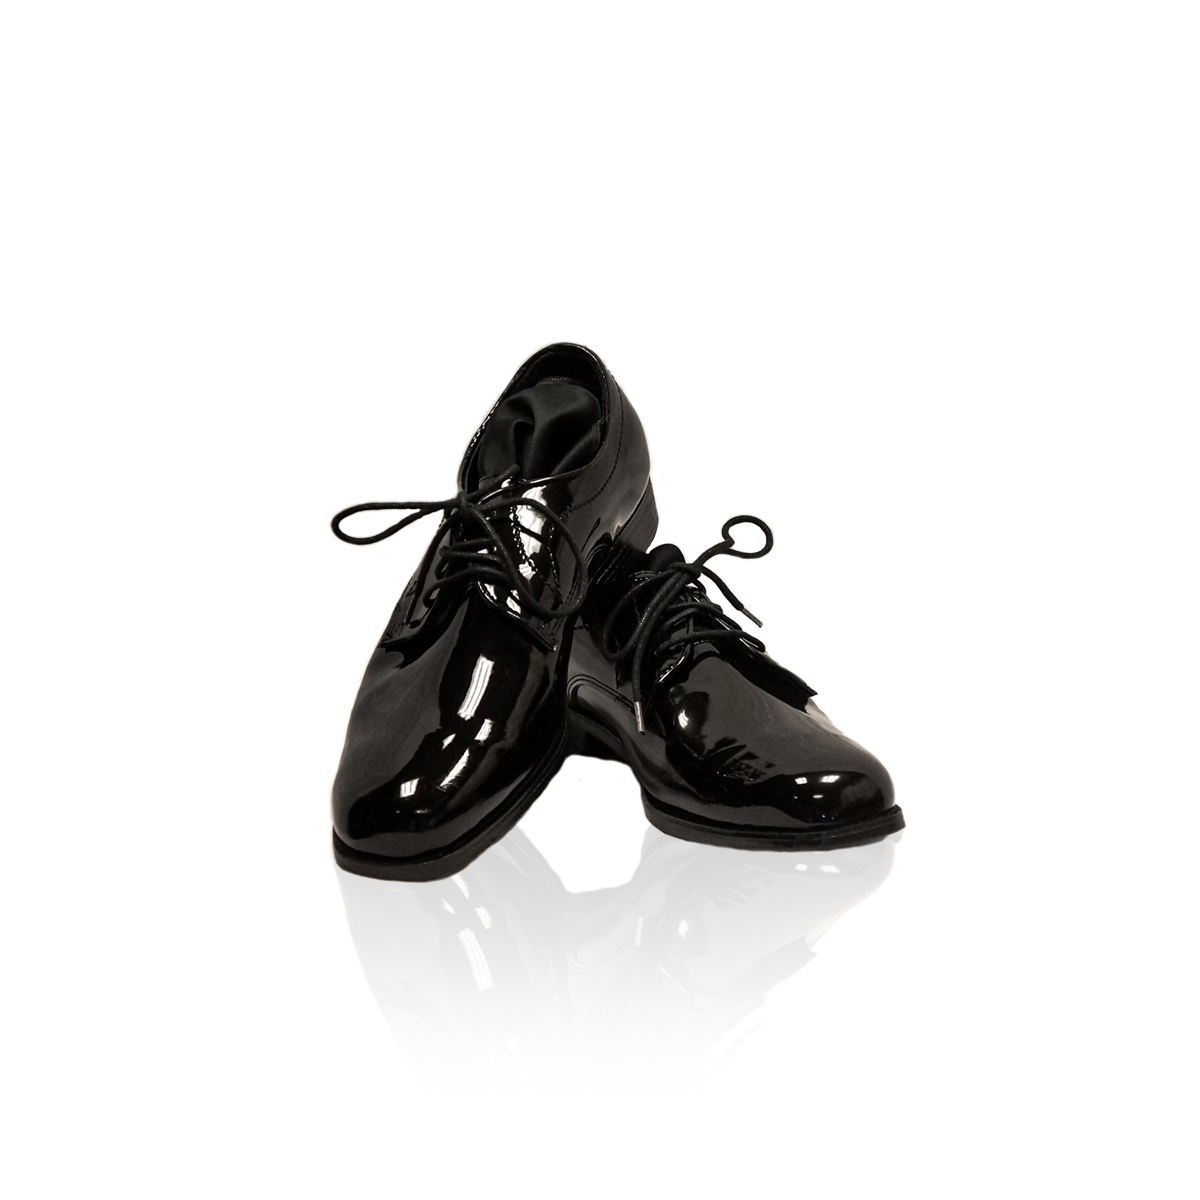 Genoa Black Shoes